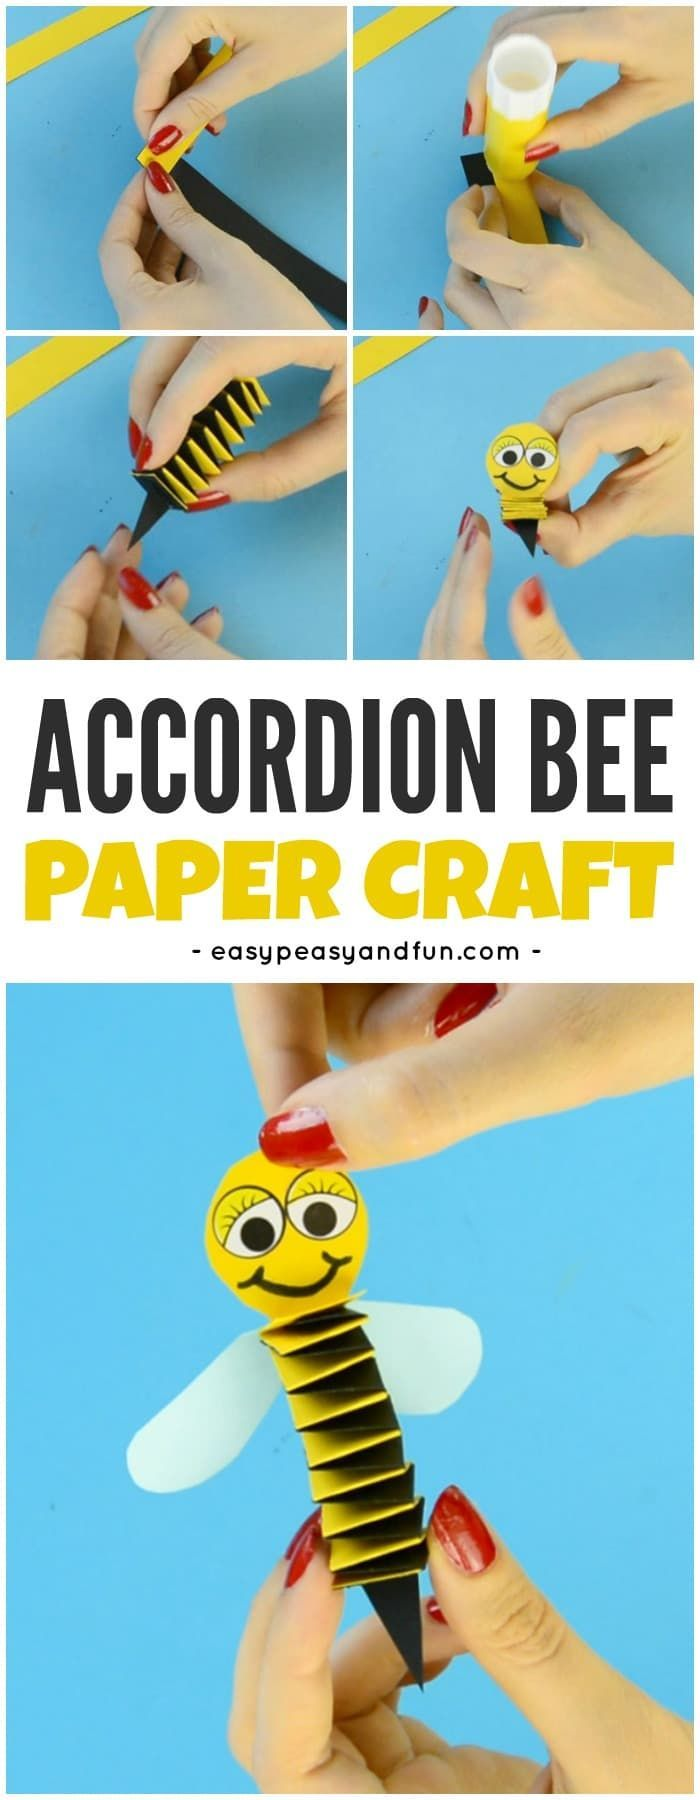 82 best APE - BEE images on Pinterest   Bees, Bumble bees and Craft ...